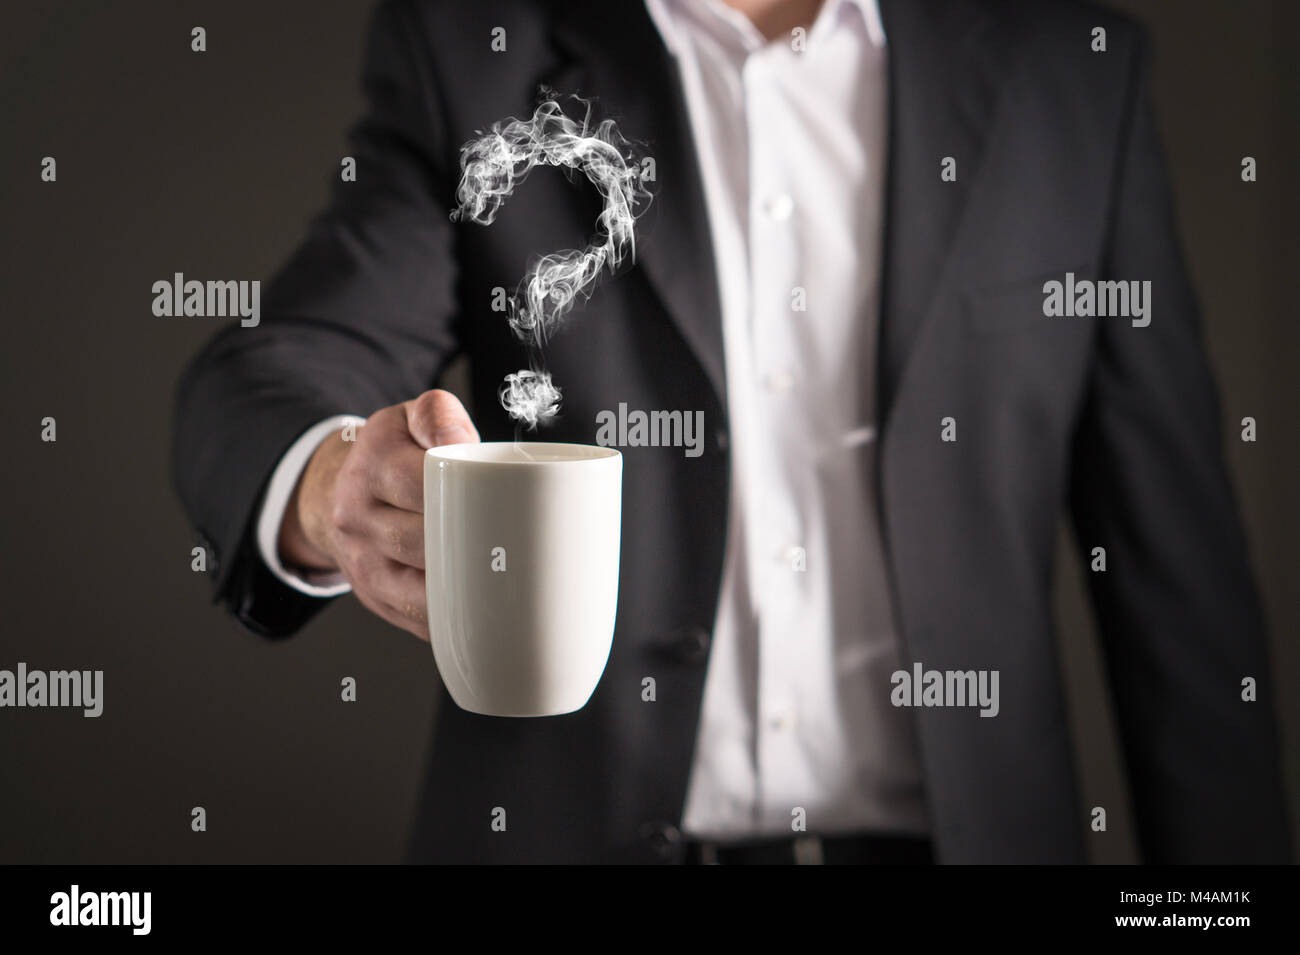 Question mark from coffee steam. Smoke forming a symbol. Business man in a suit holding a hot beverage in a mug - Stock Image